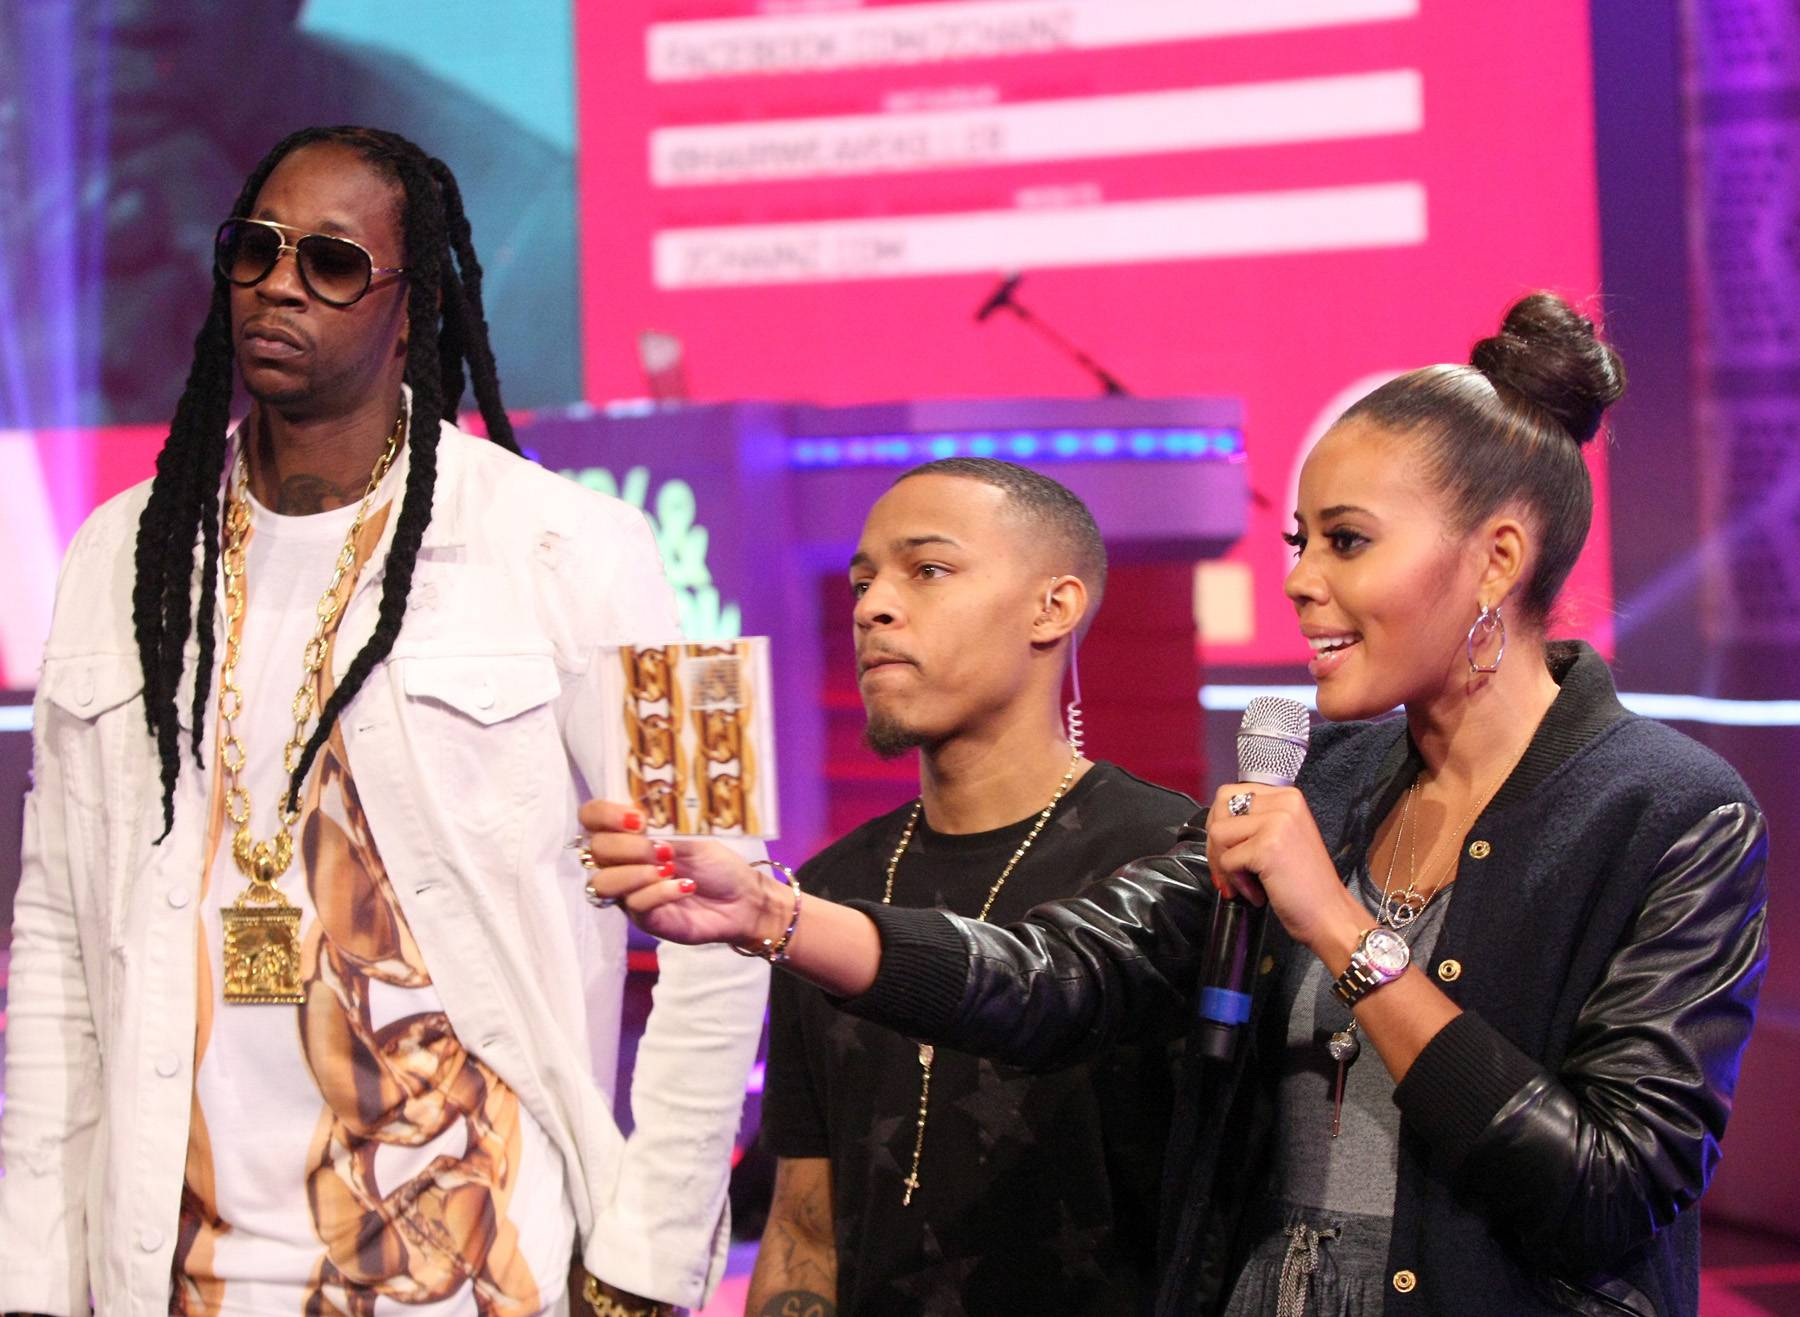 There It Is! - Angela Simmons shows off 2 Chains' newest album, B.O.A.T.S. II: Me Time. (Photo: Bennett Raglin/BET/Getty Images for BET)